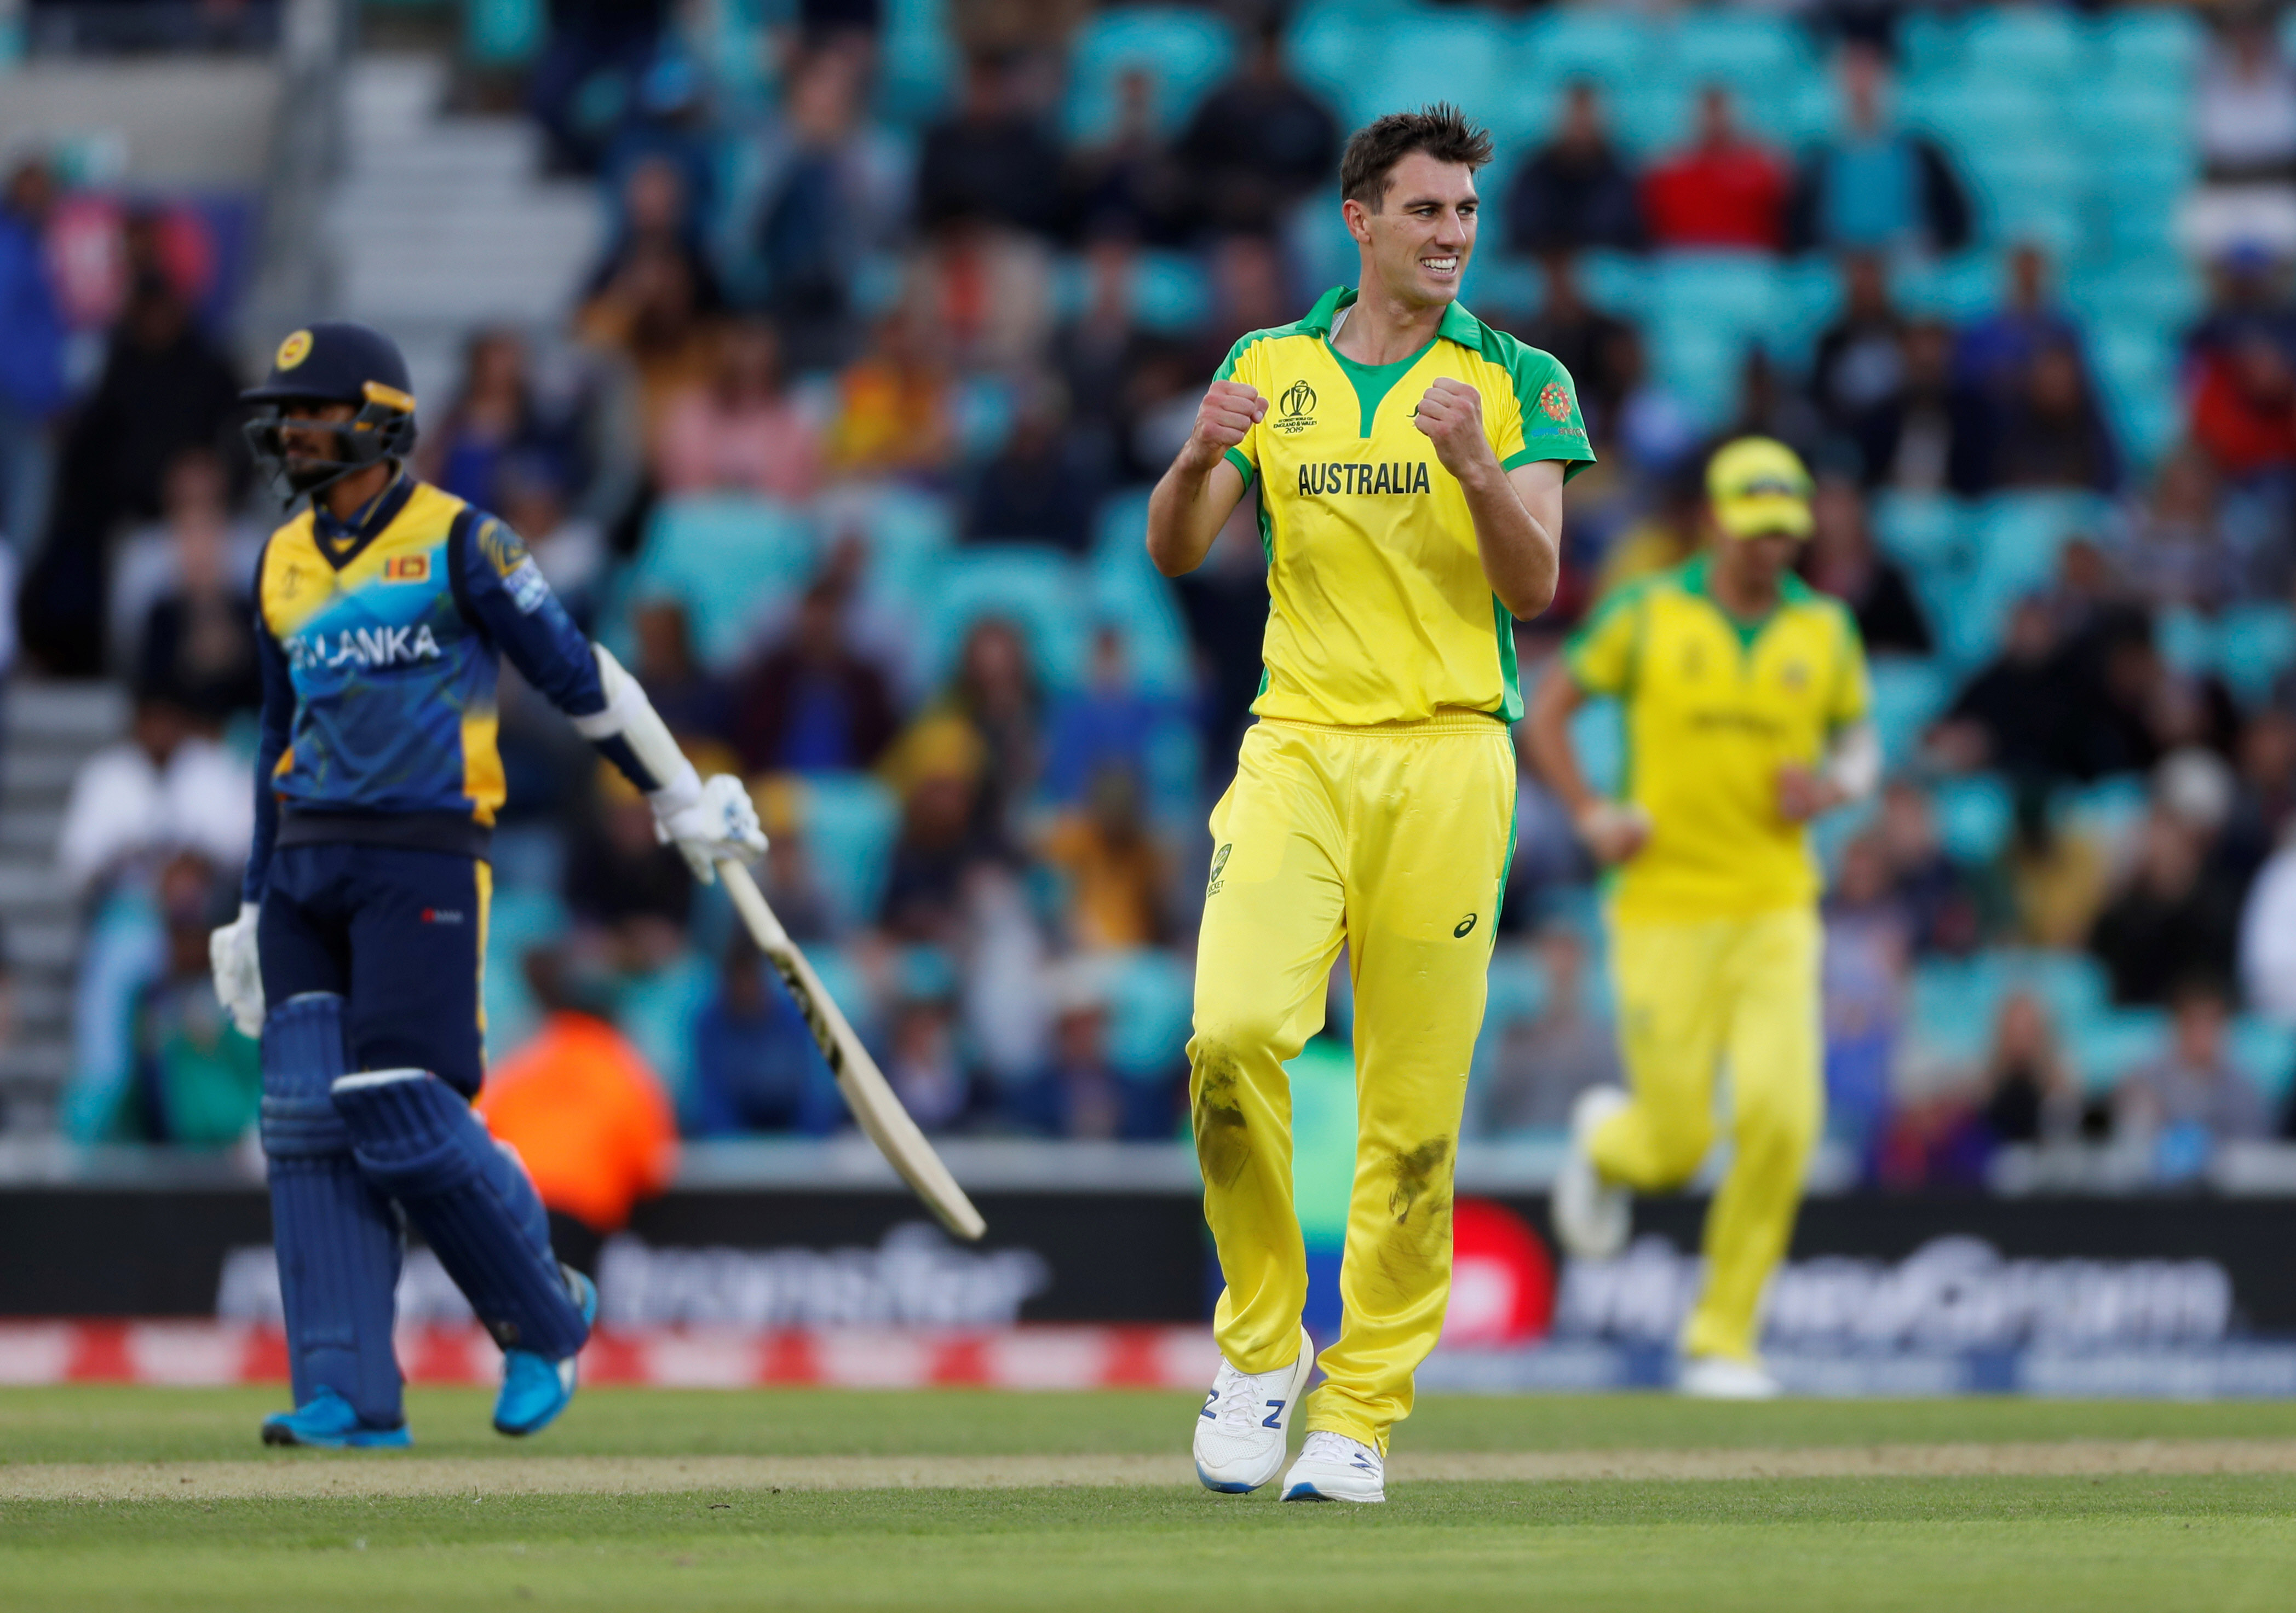 World Cup 2019: Australia vs Sri Lanka